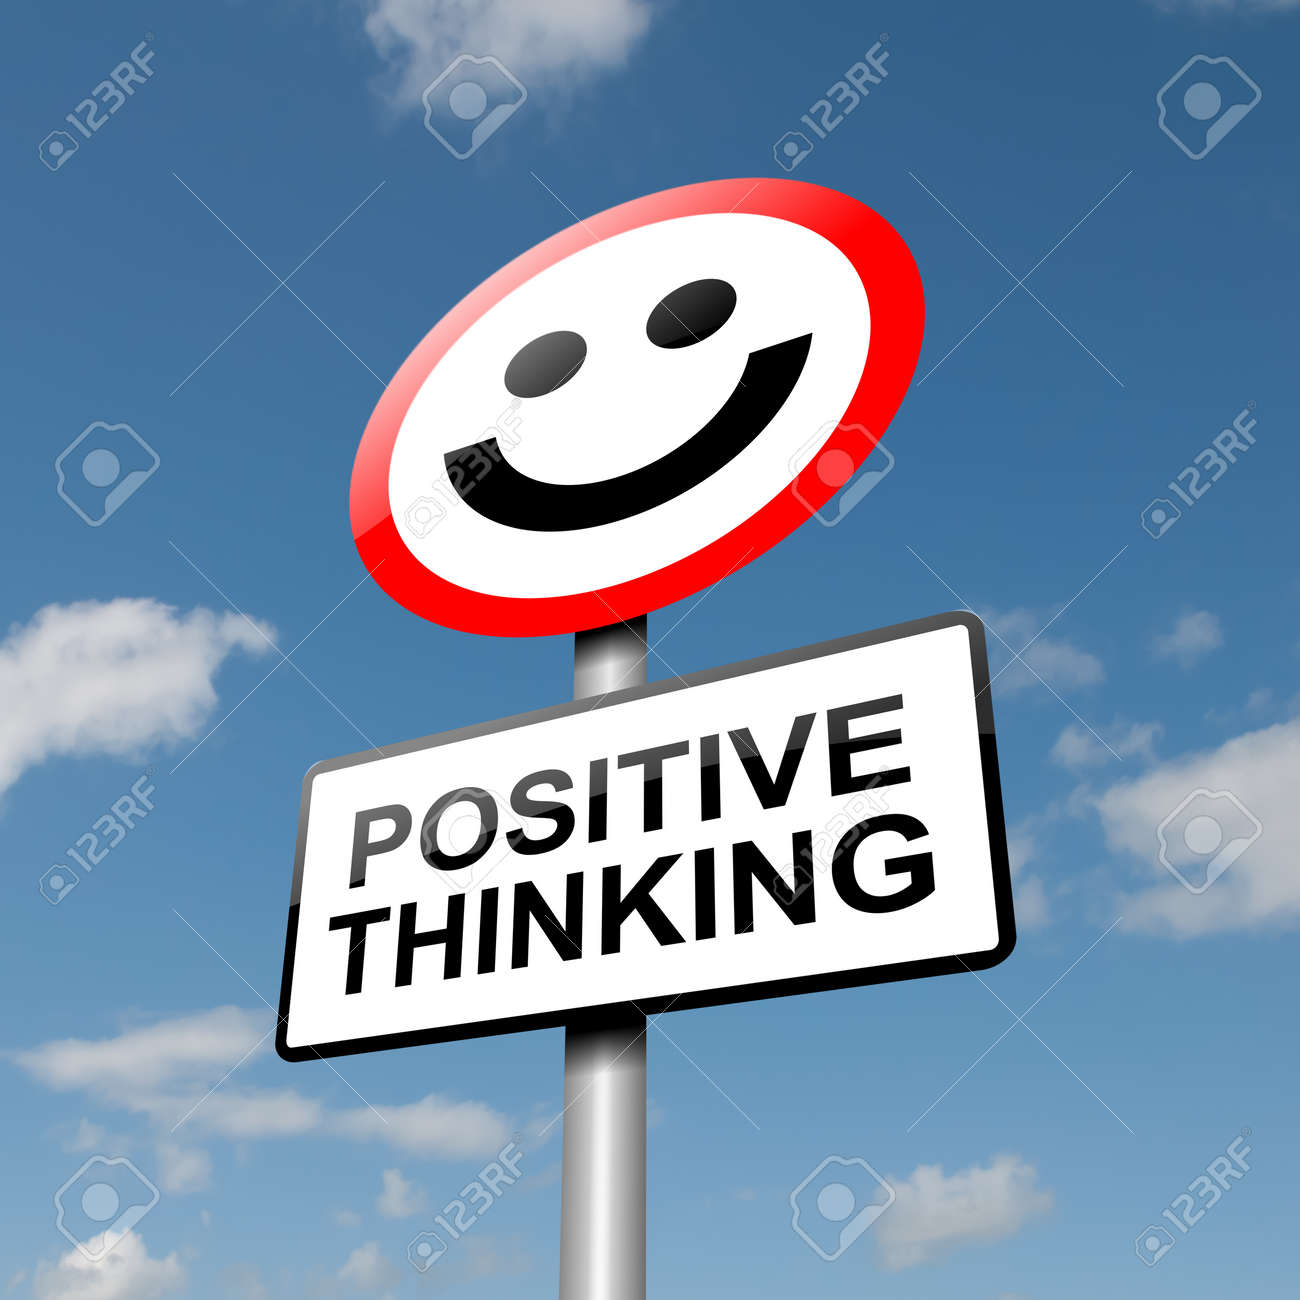 Illustration depicting a road traffic sign with a positive thinking concept  Blue sky background Stock Photo - 13721747